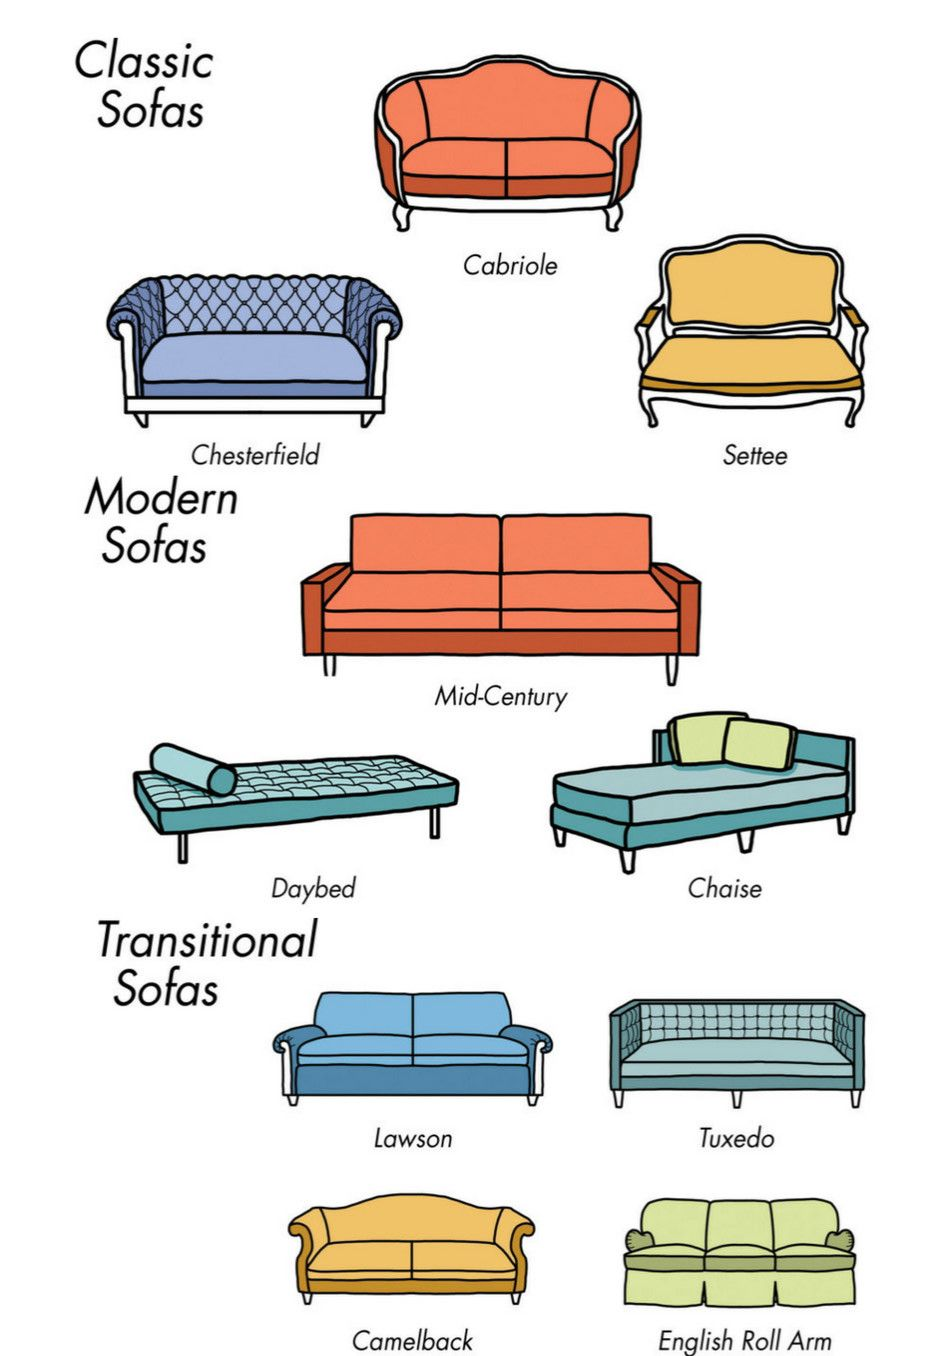 types of sofas sofa suede cleaner these charts are everything you need to choose furniture how a choosing is big decision not only because the cost but also they set tone for style room